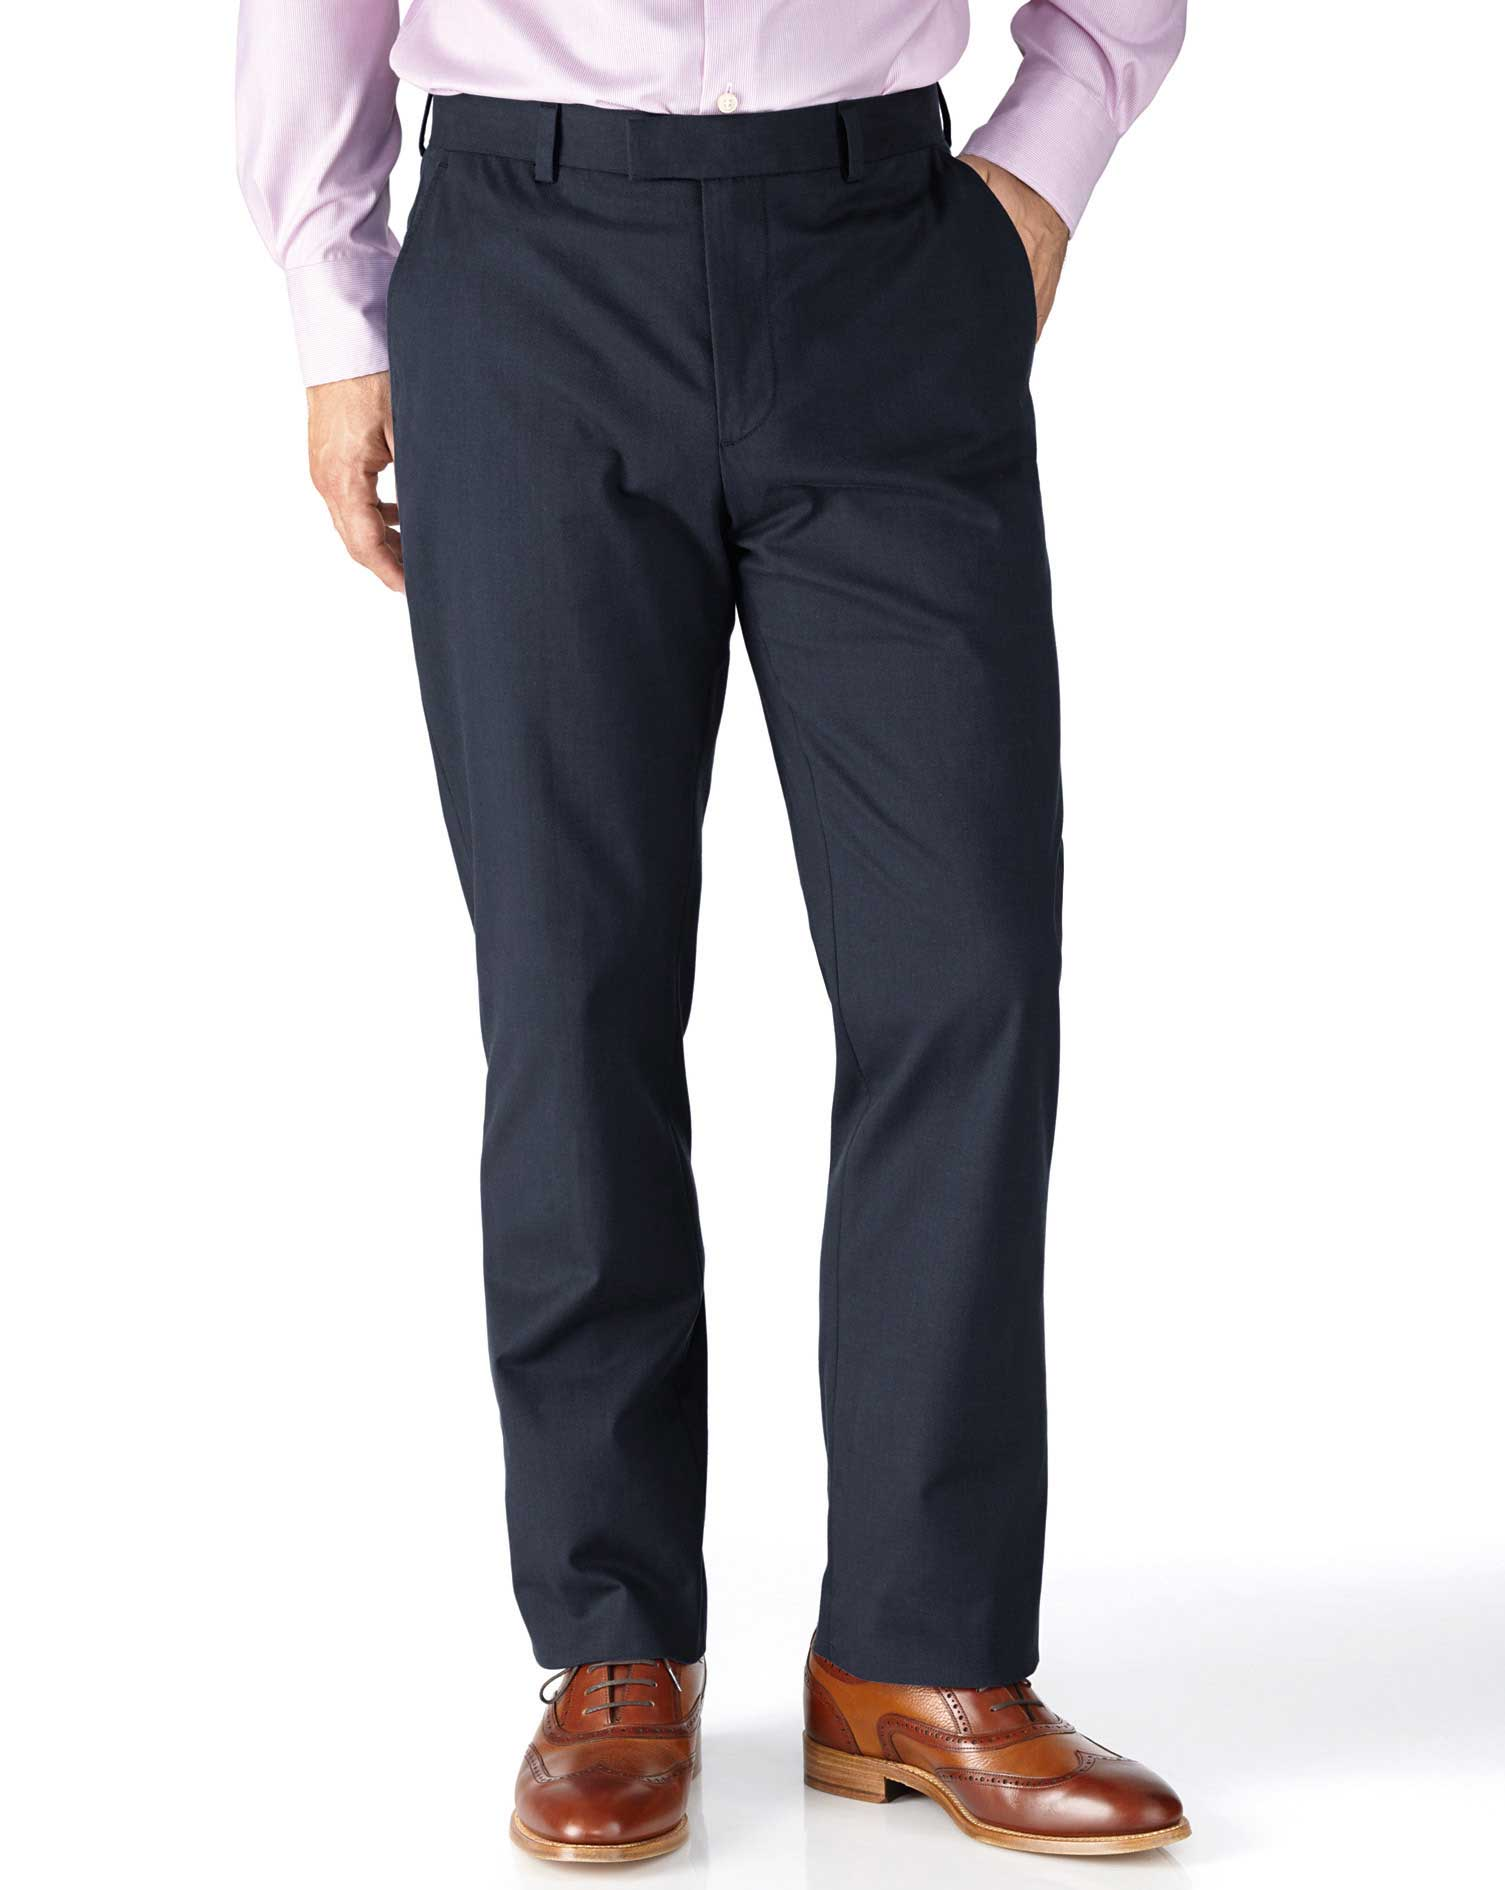 Navy Slim Fit Stretch Cavalry Twill Trousers Size W36 L34 by Charles Tyrwhitt